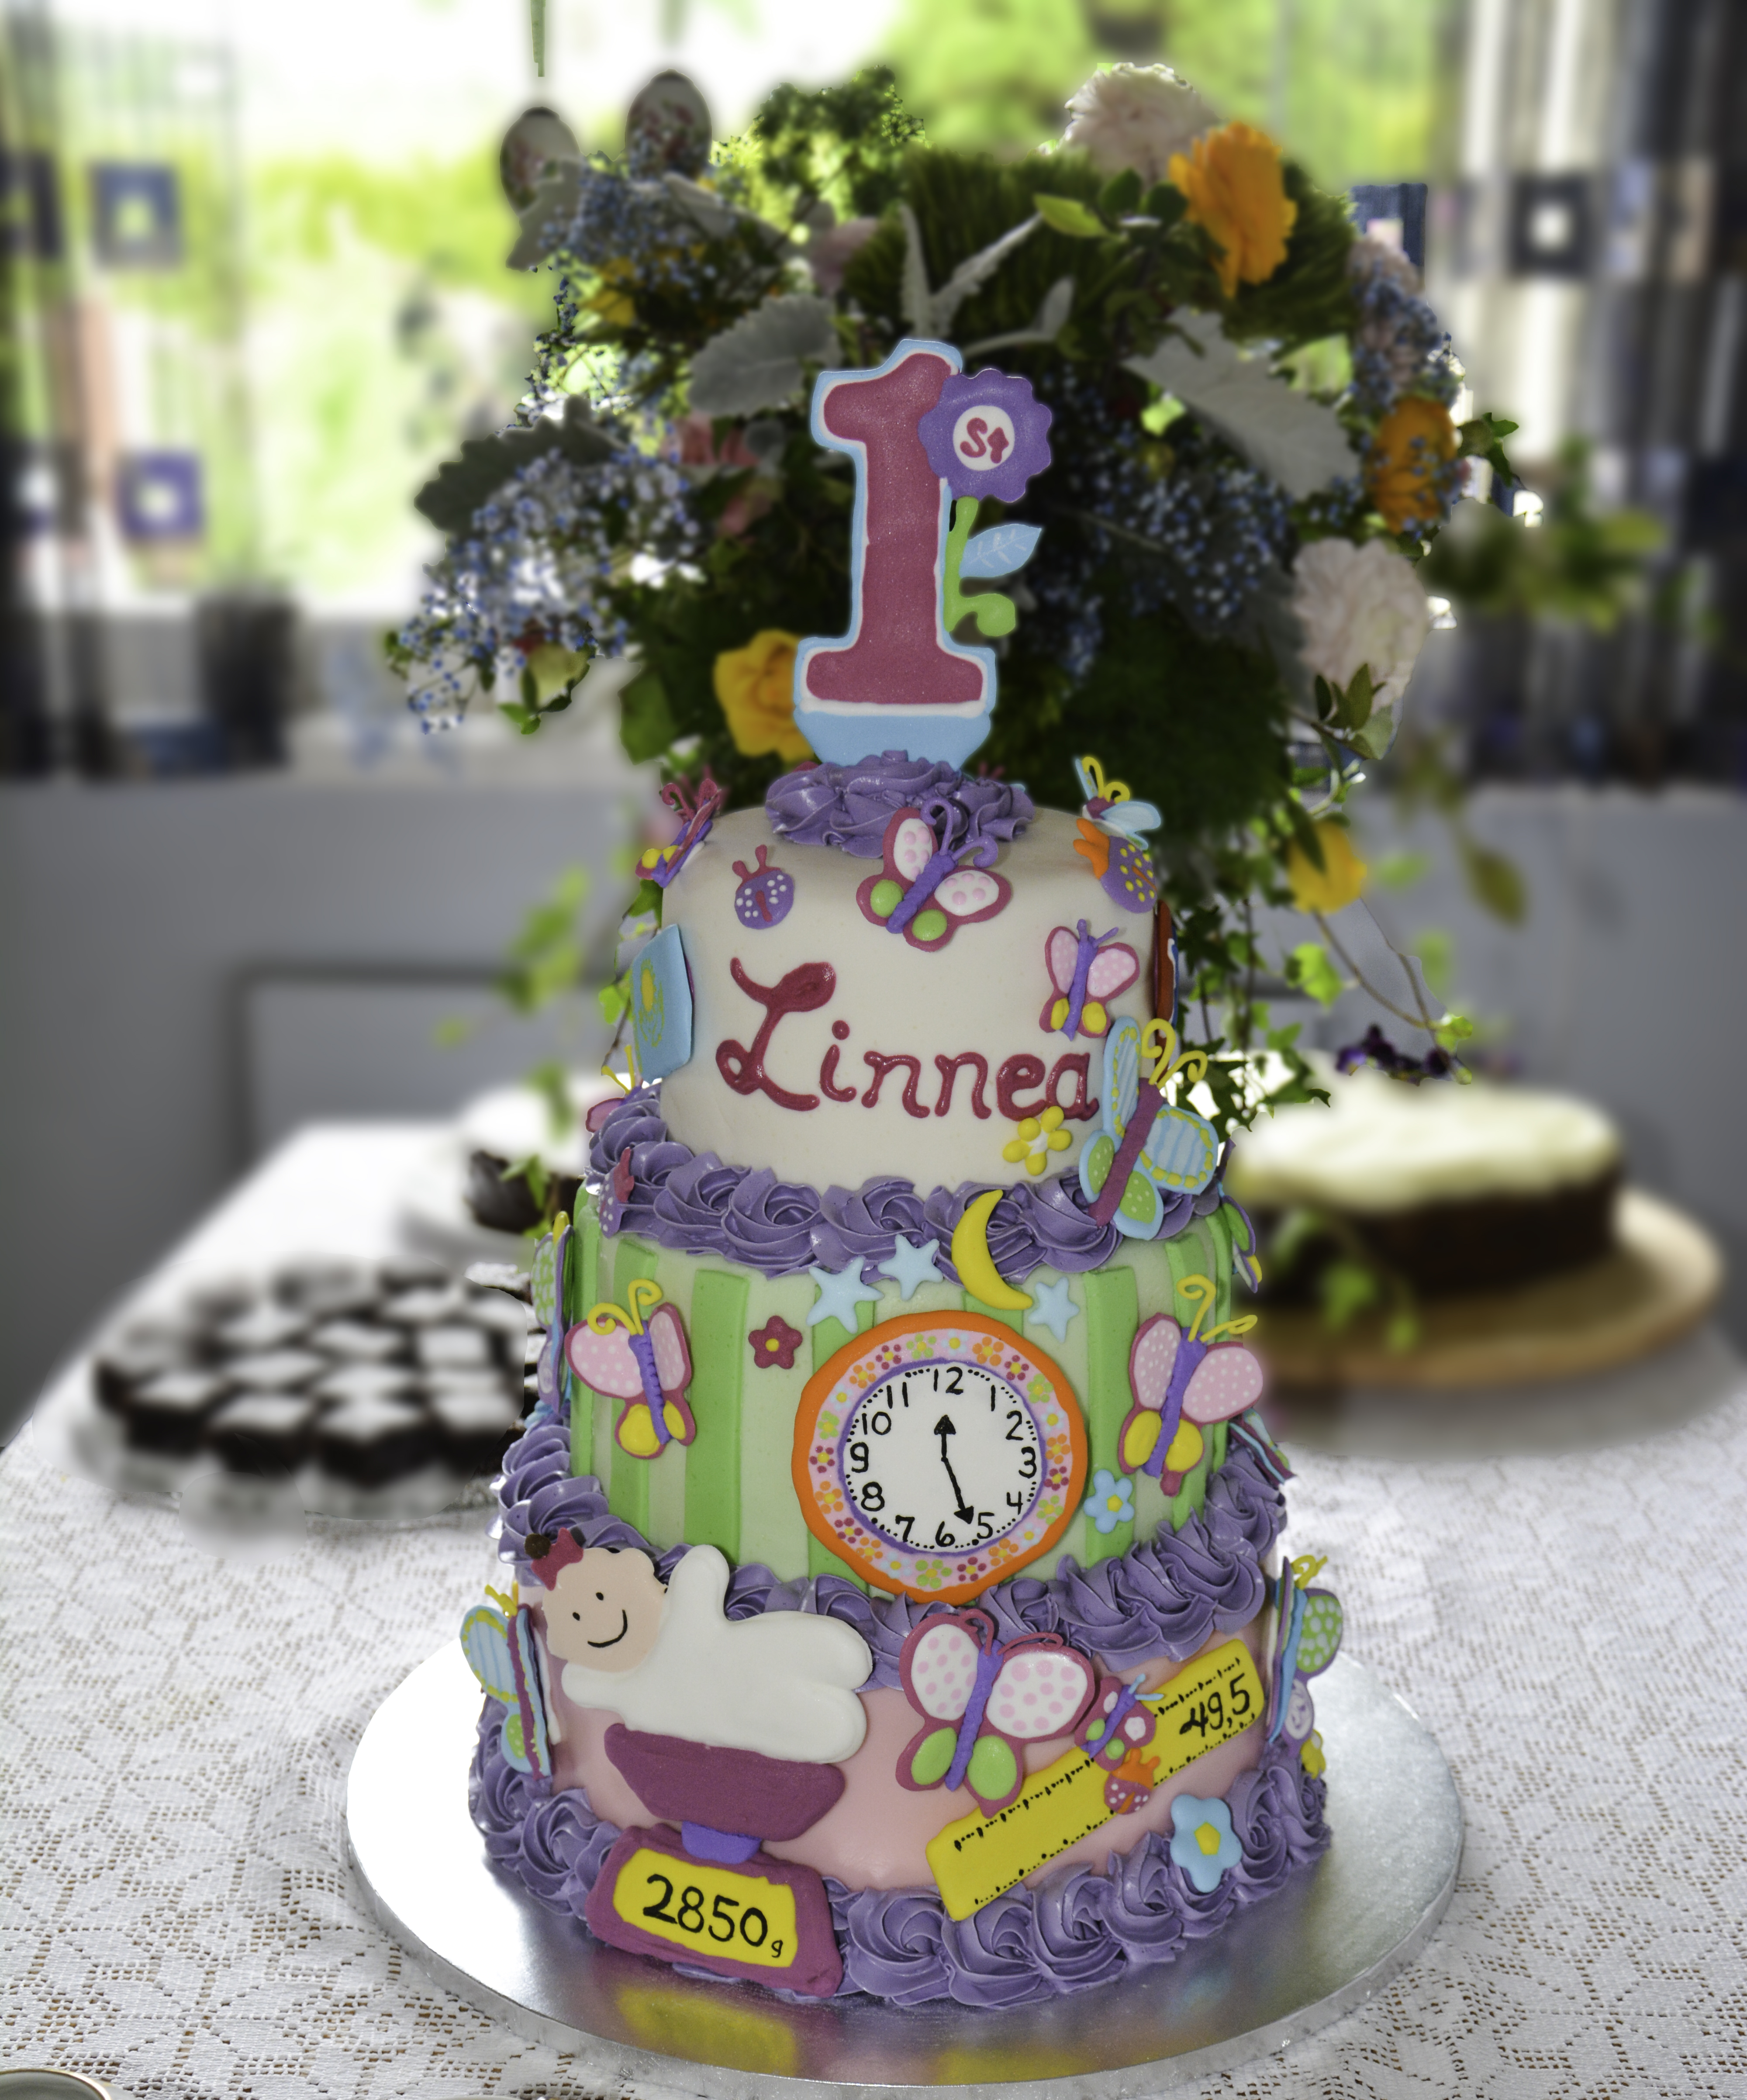 Linnea's Birthday Cake